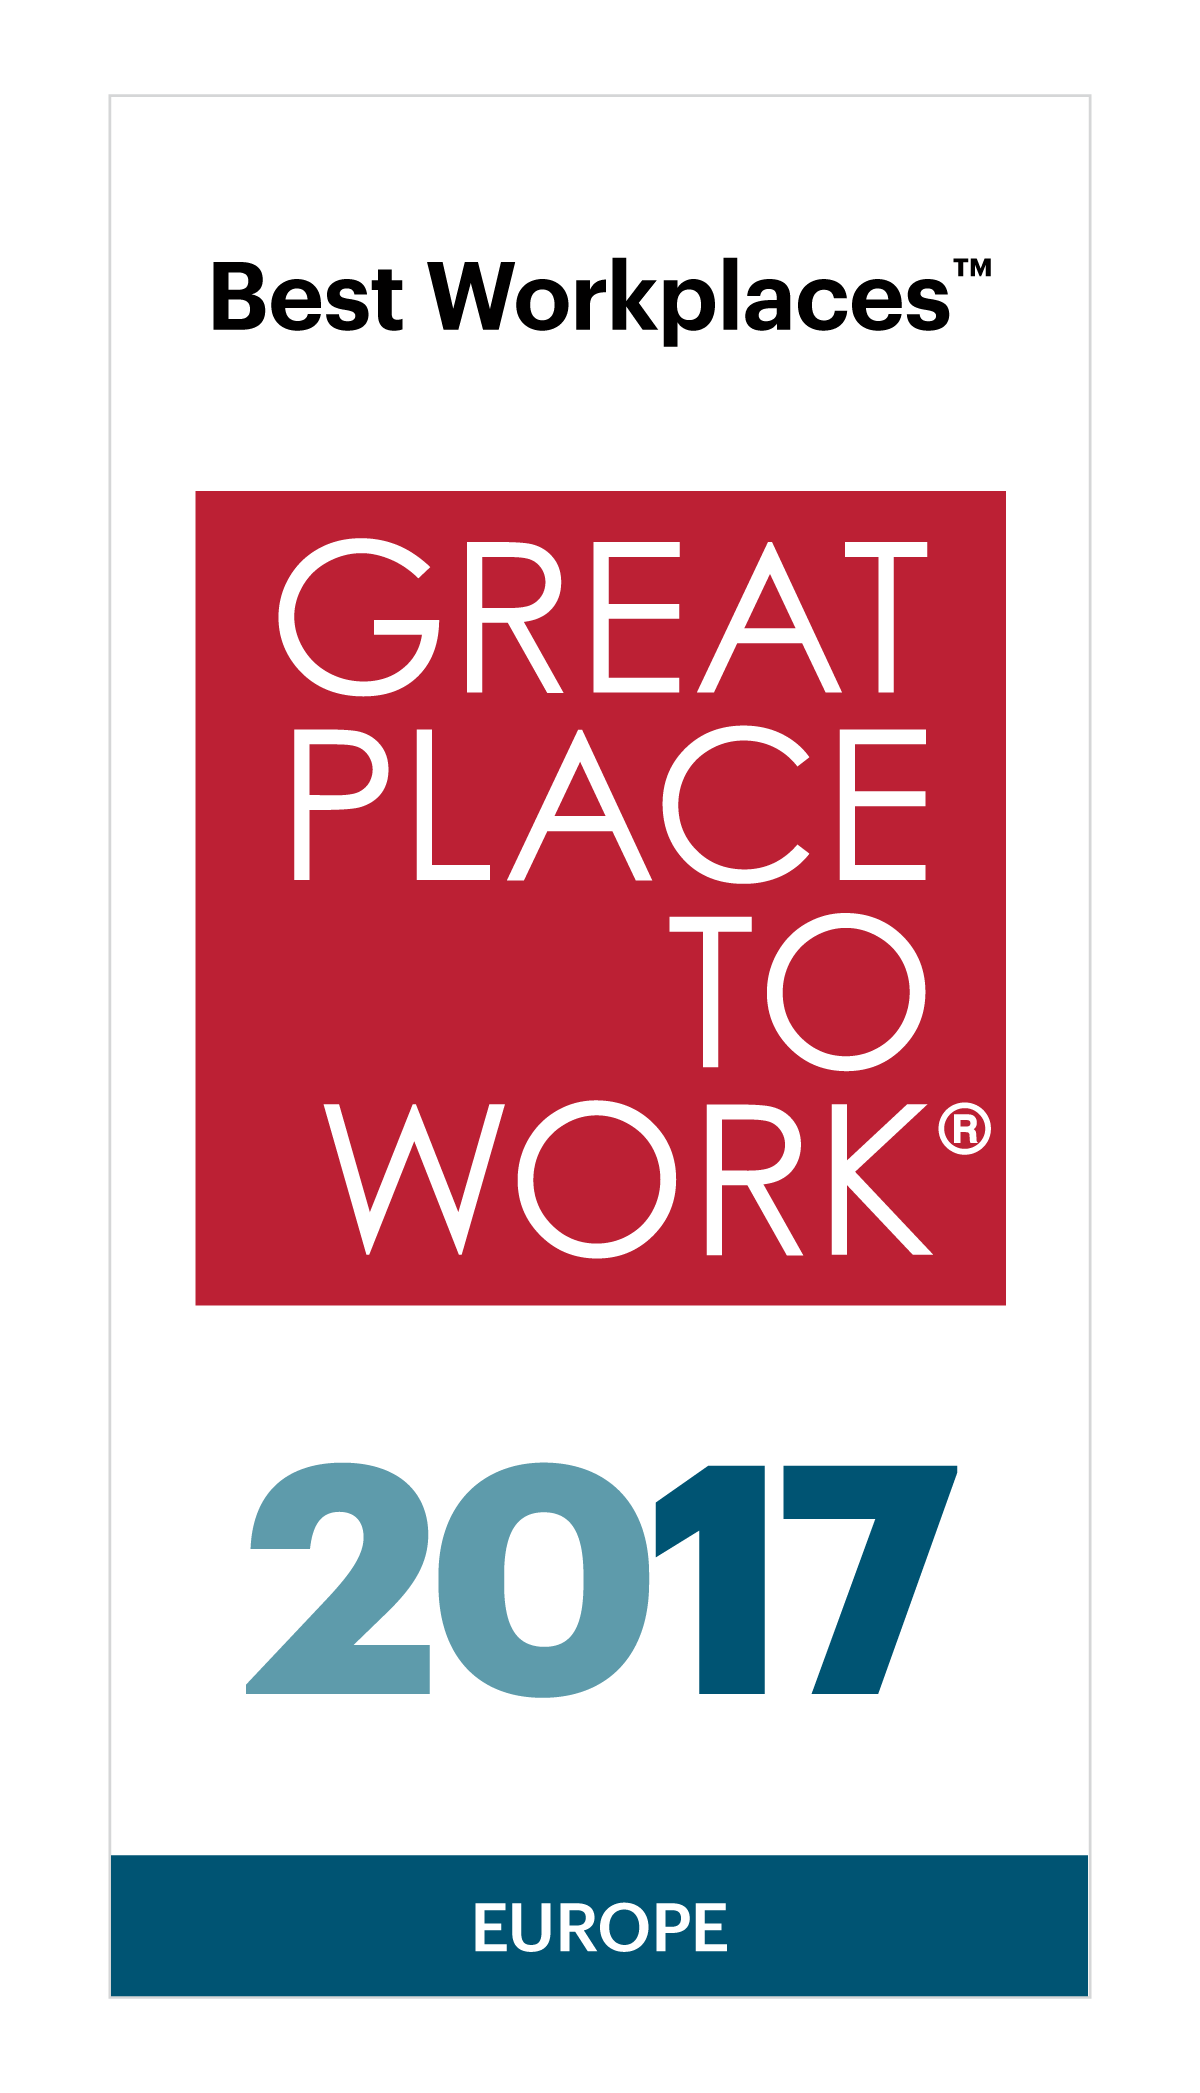 Best Workplace Europe